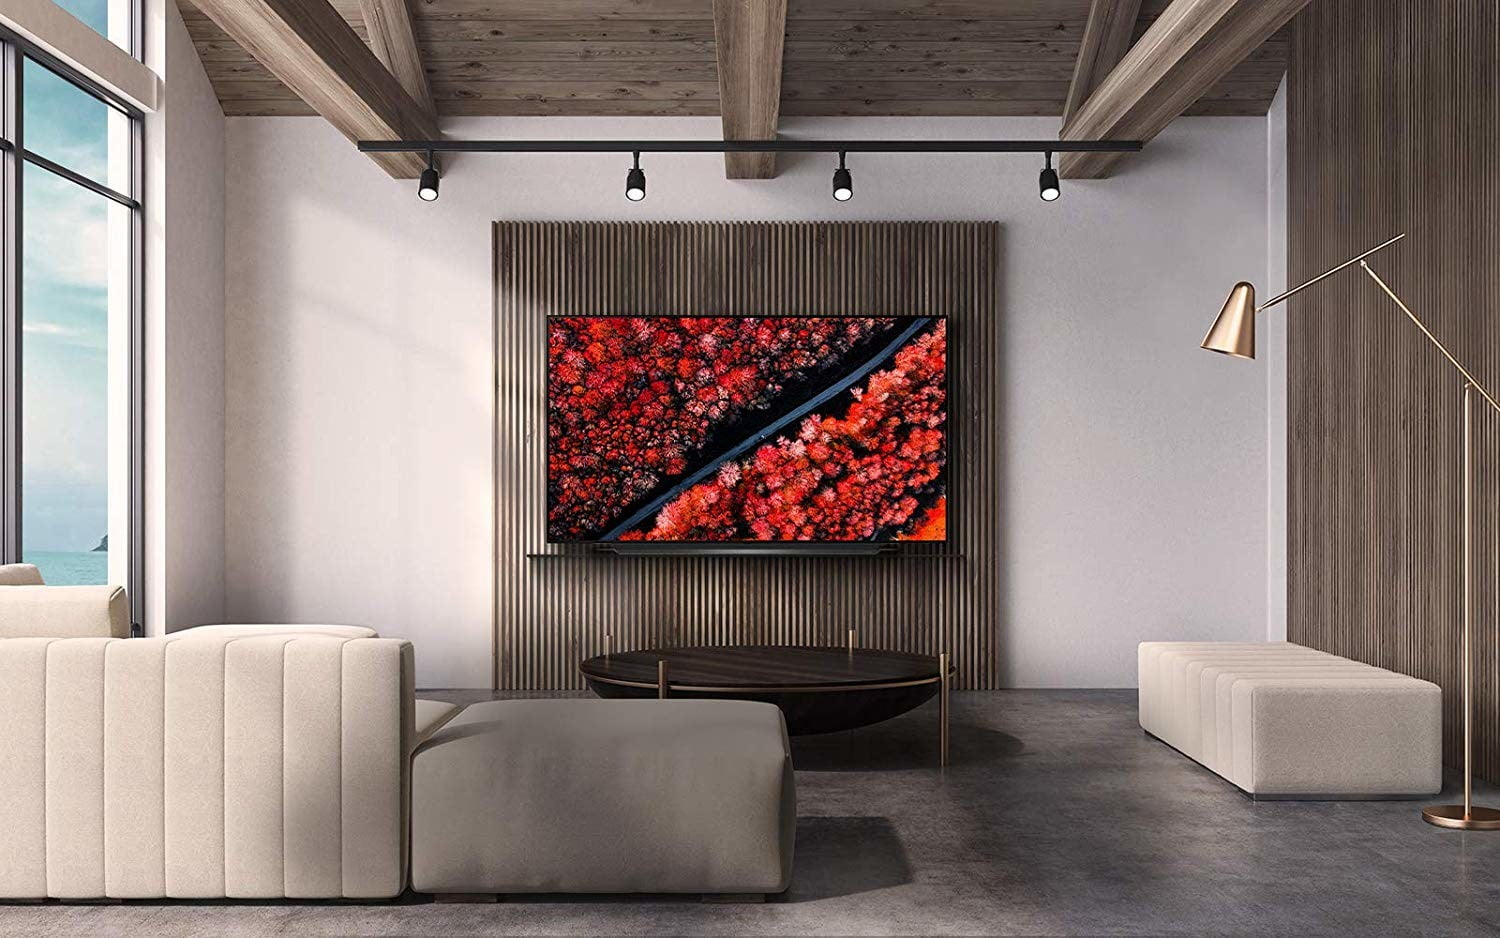 Amazon TV deals: These LG 4K TVs are discounted for up to a massive $503 off